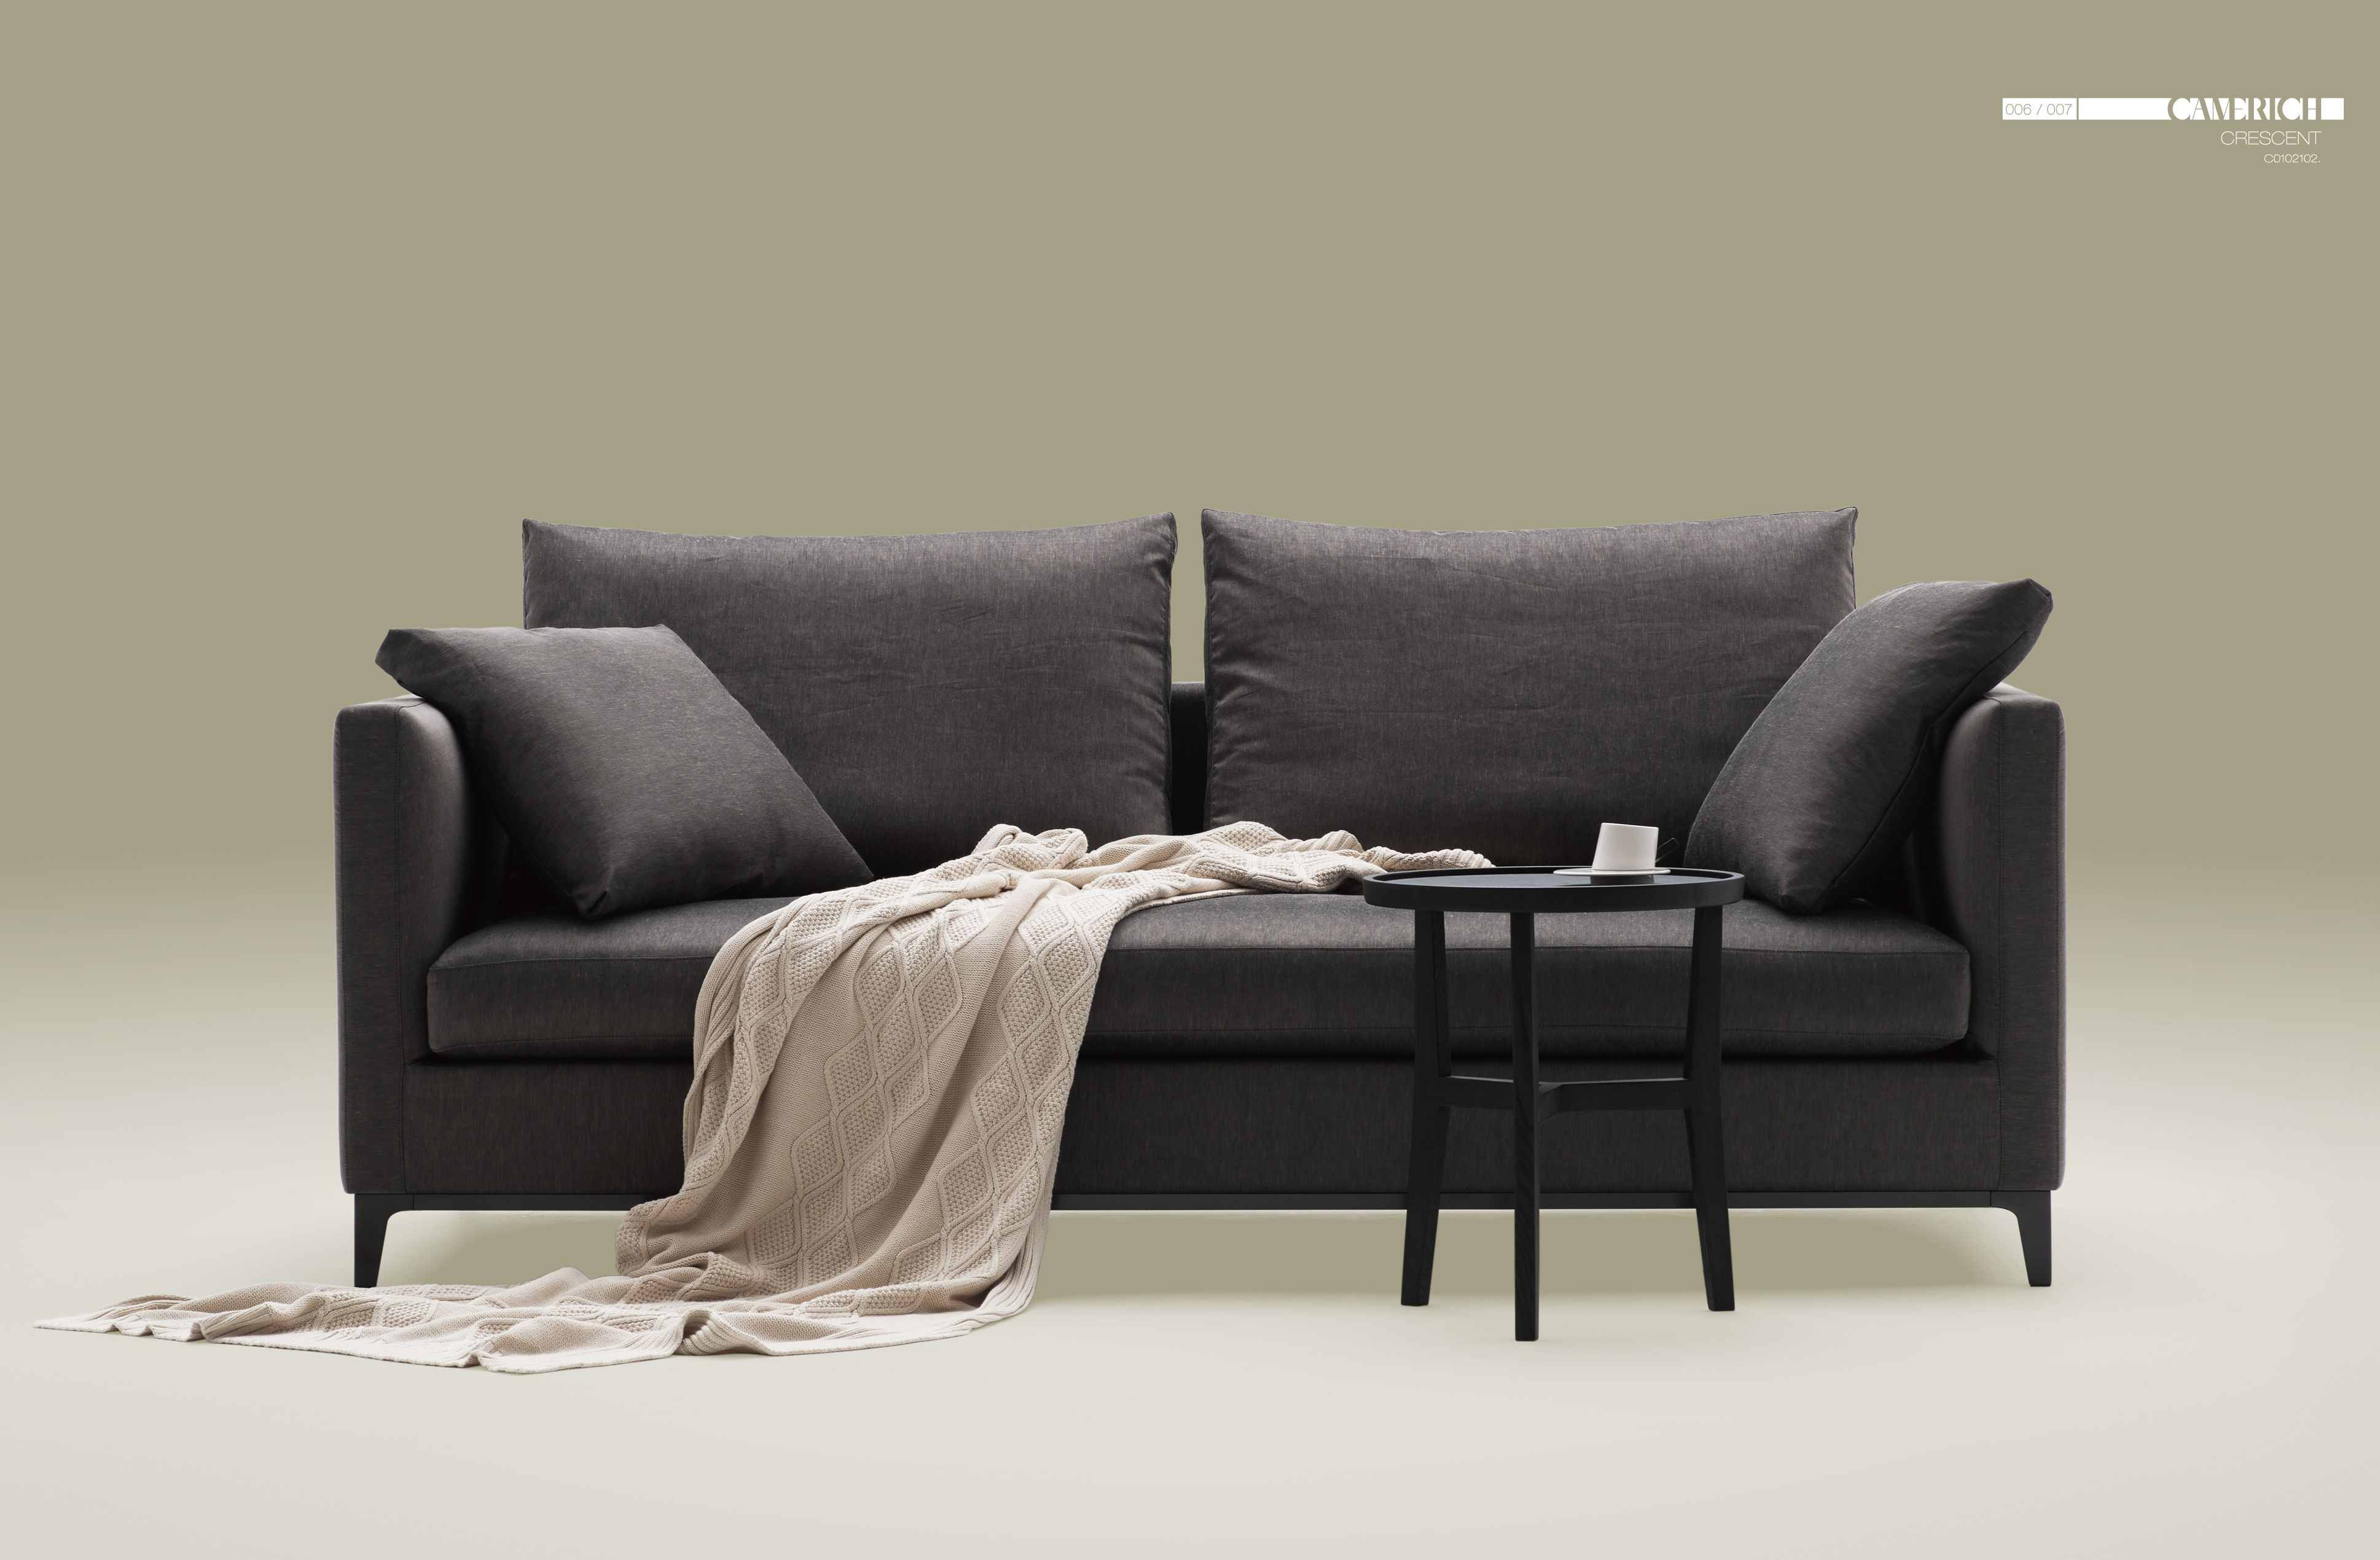 Crescent Sofa Camerich Table With Cabinets Bed Review Home Co